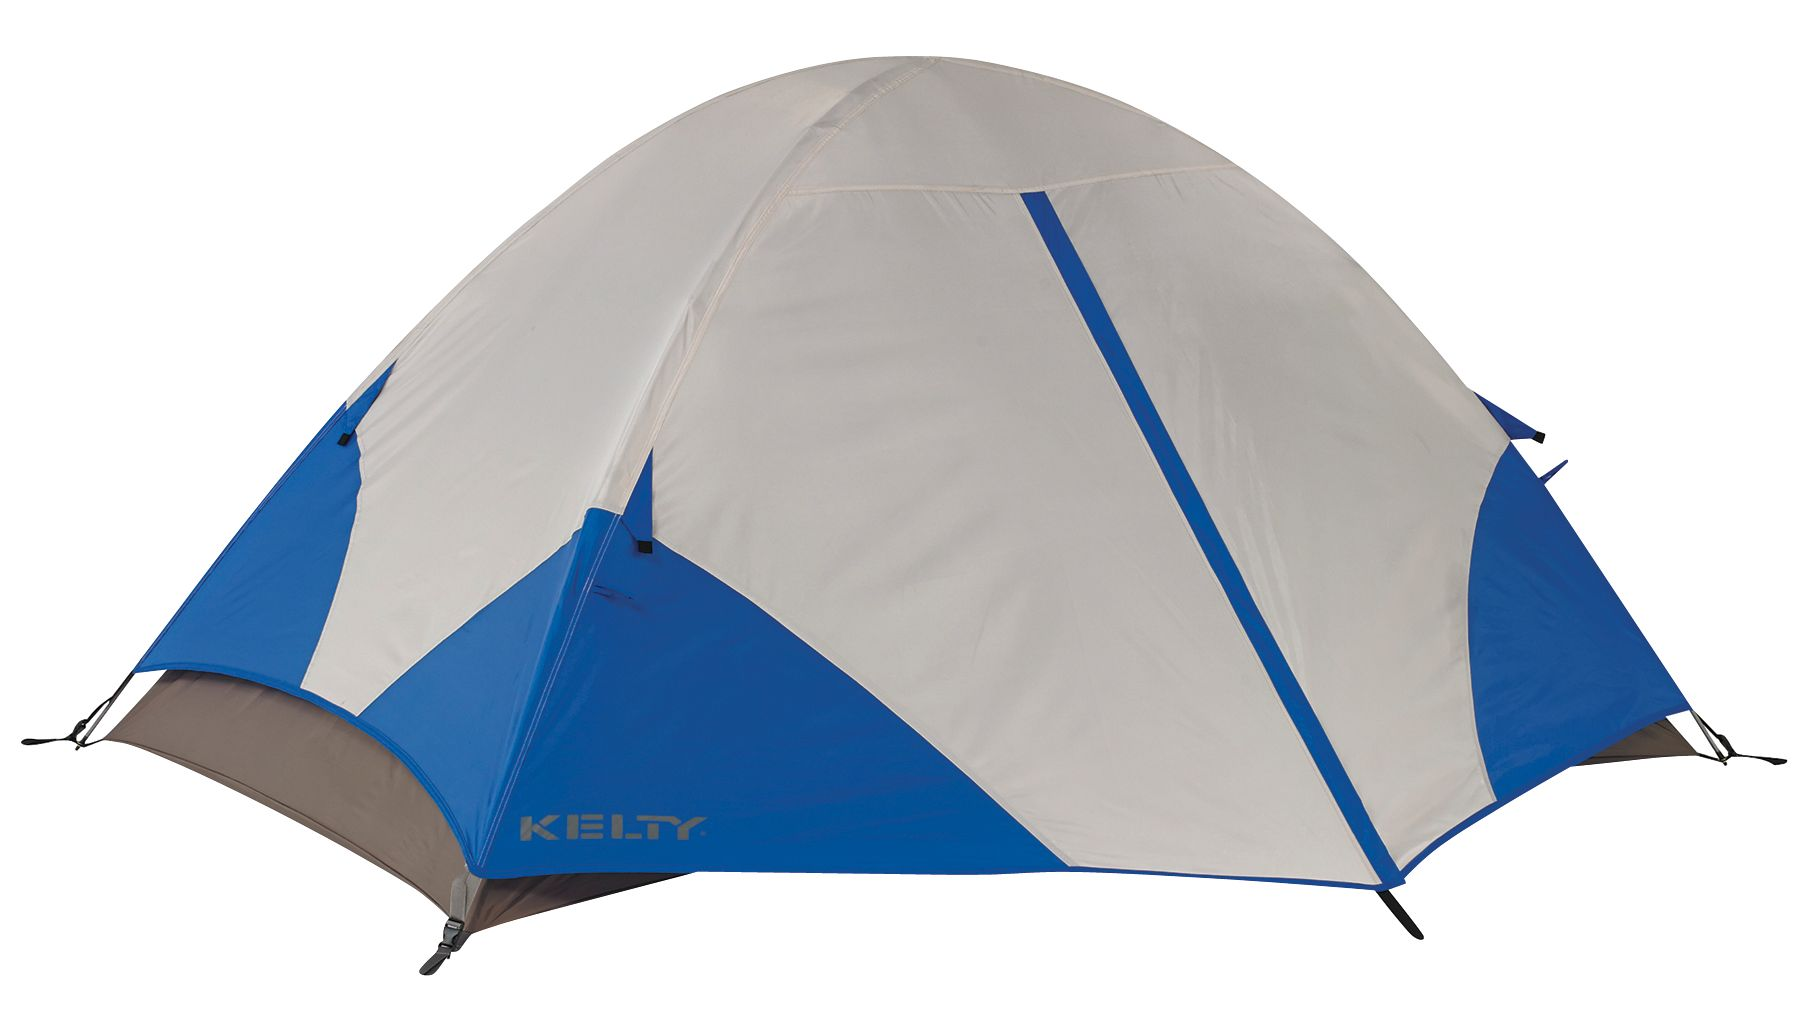 Kelty Tempest 2 Person Dome Tent  sc 1 st  Field u0026 Stream & Camping Tents - Dome Family u0026 Backyard | Field u0026 Stream